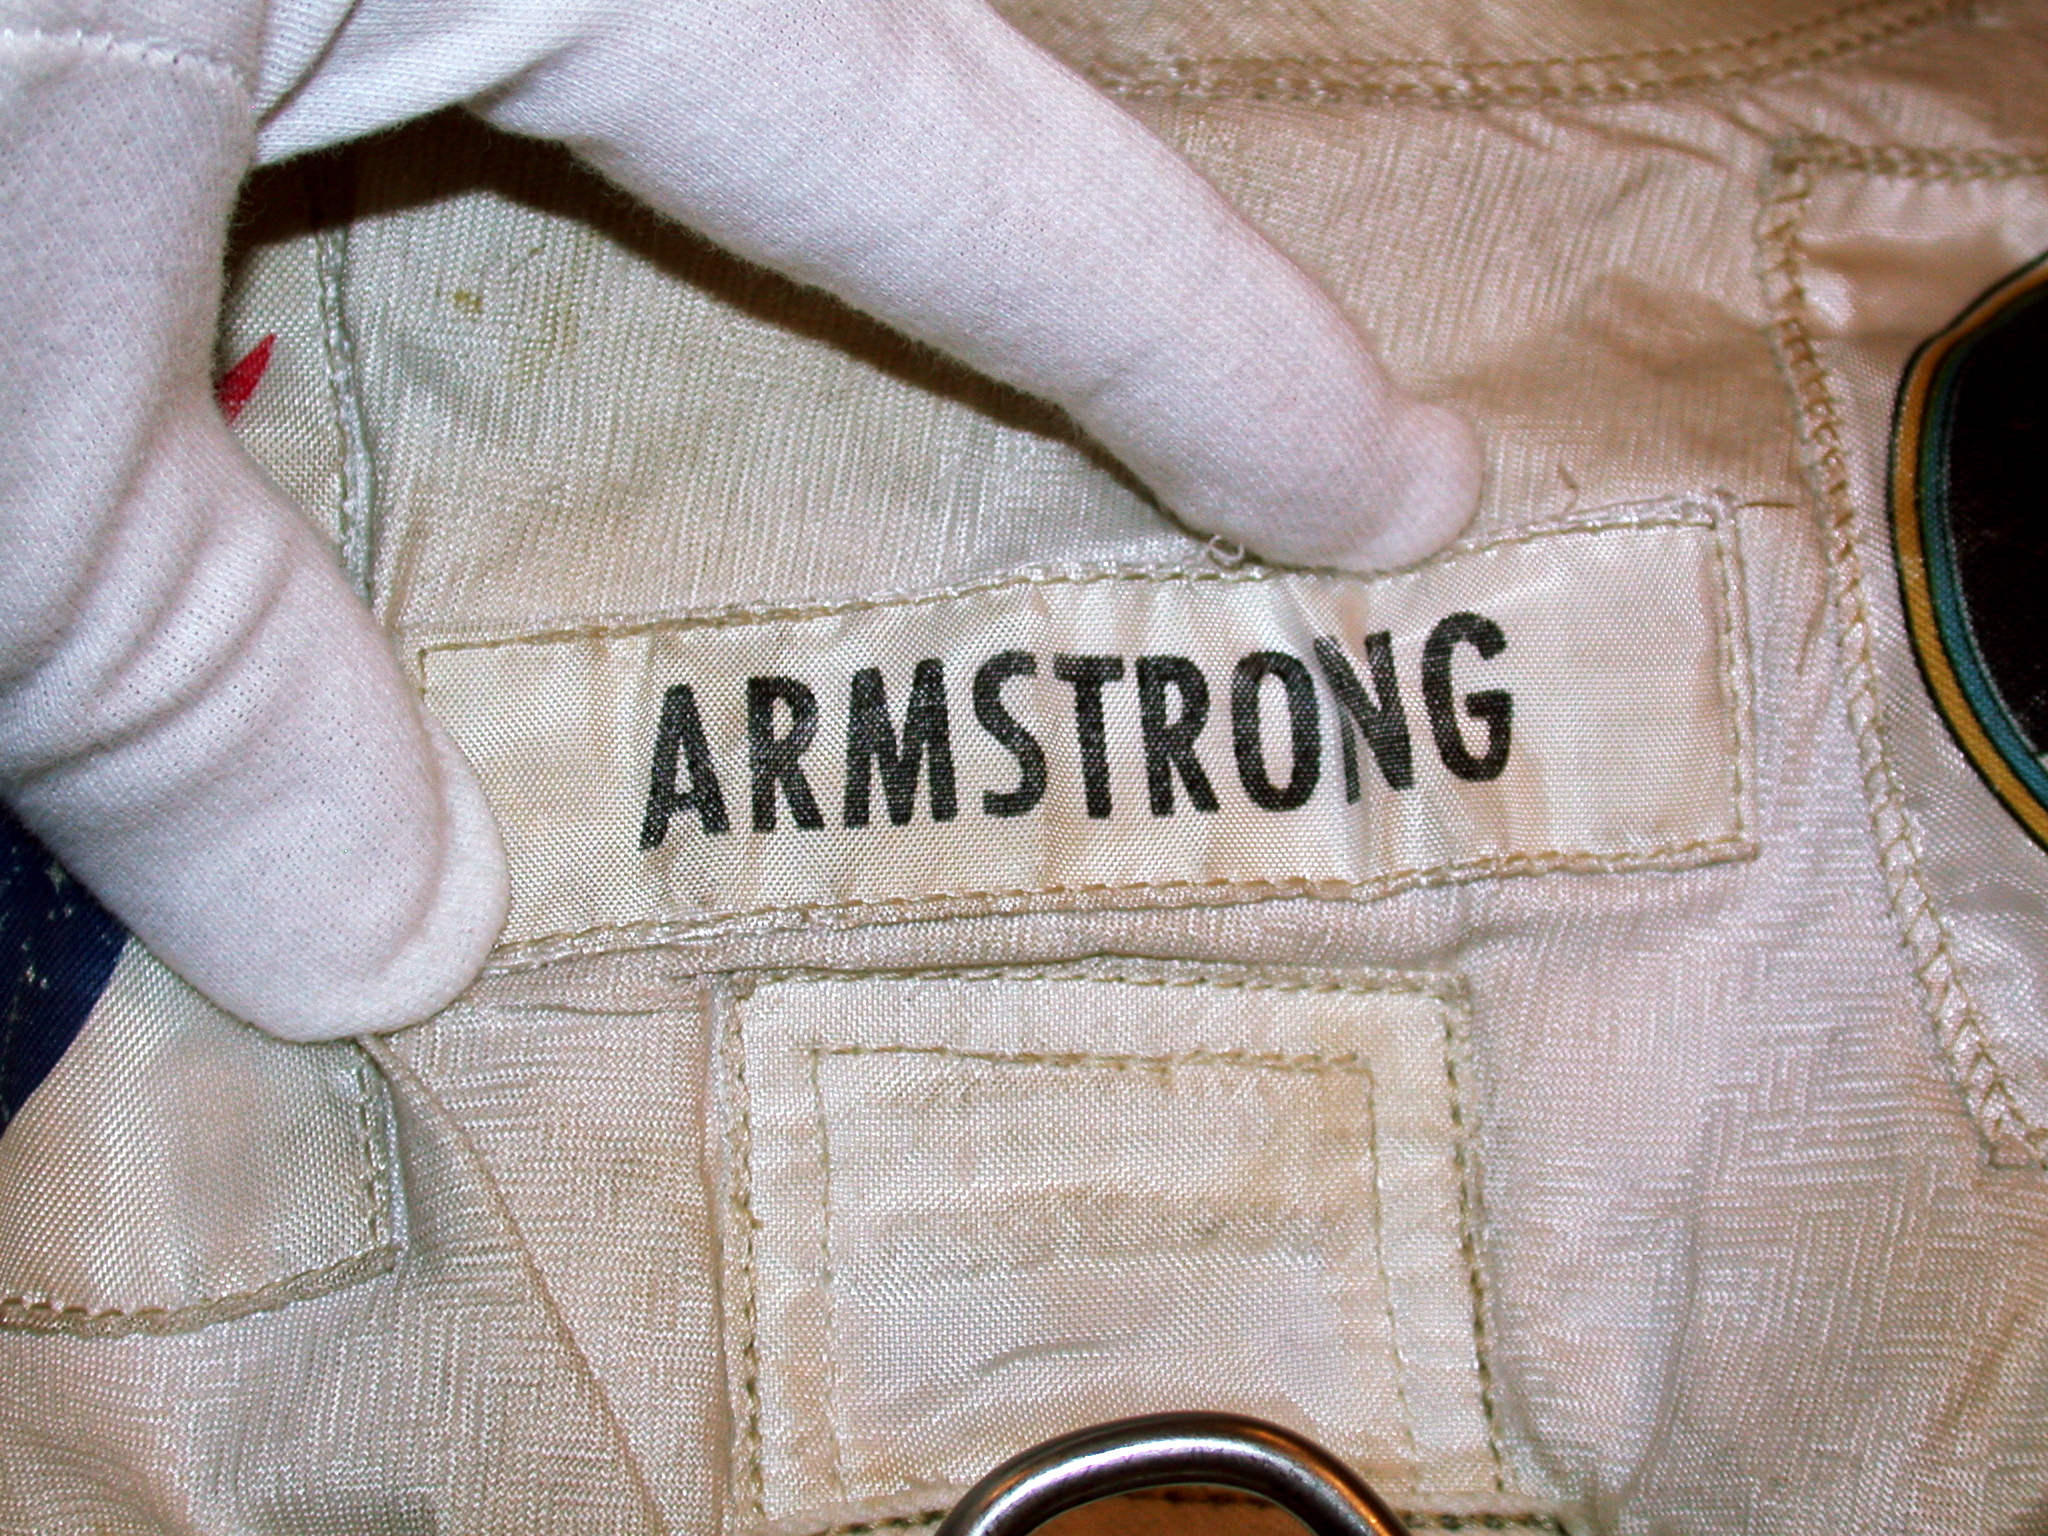 neil armstrong astronaut badges - photo #27